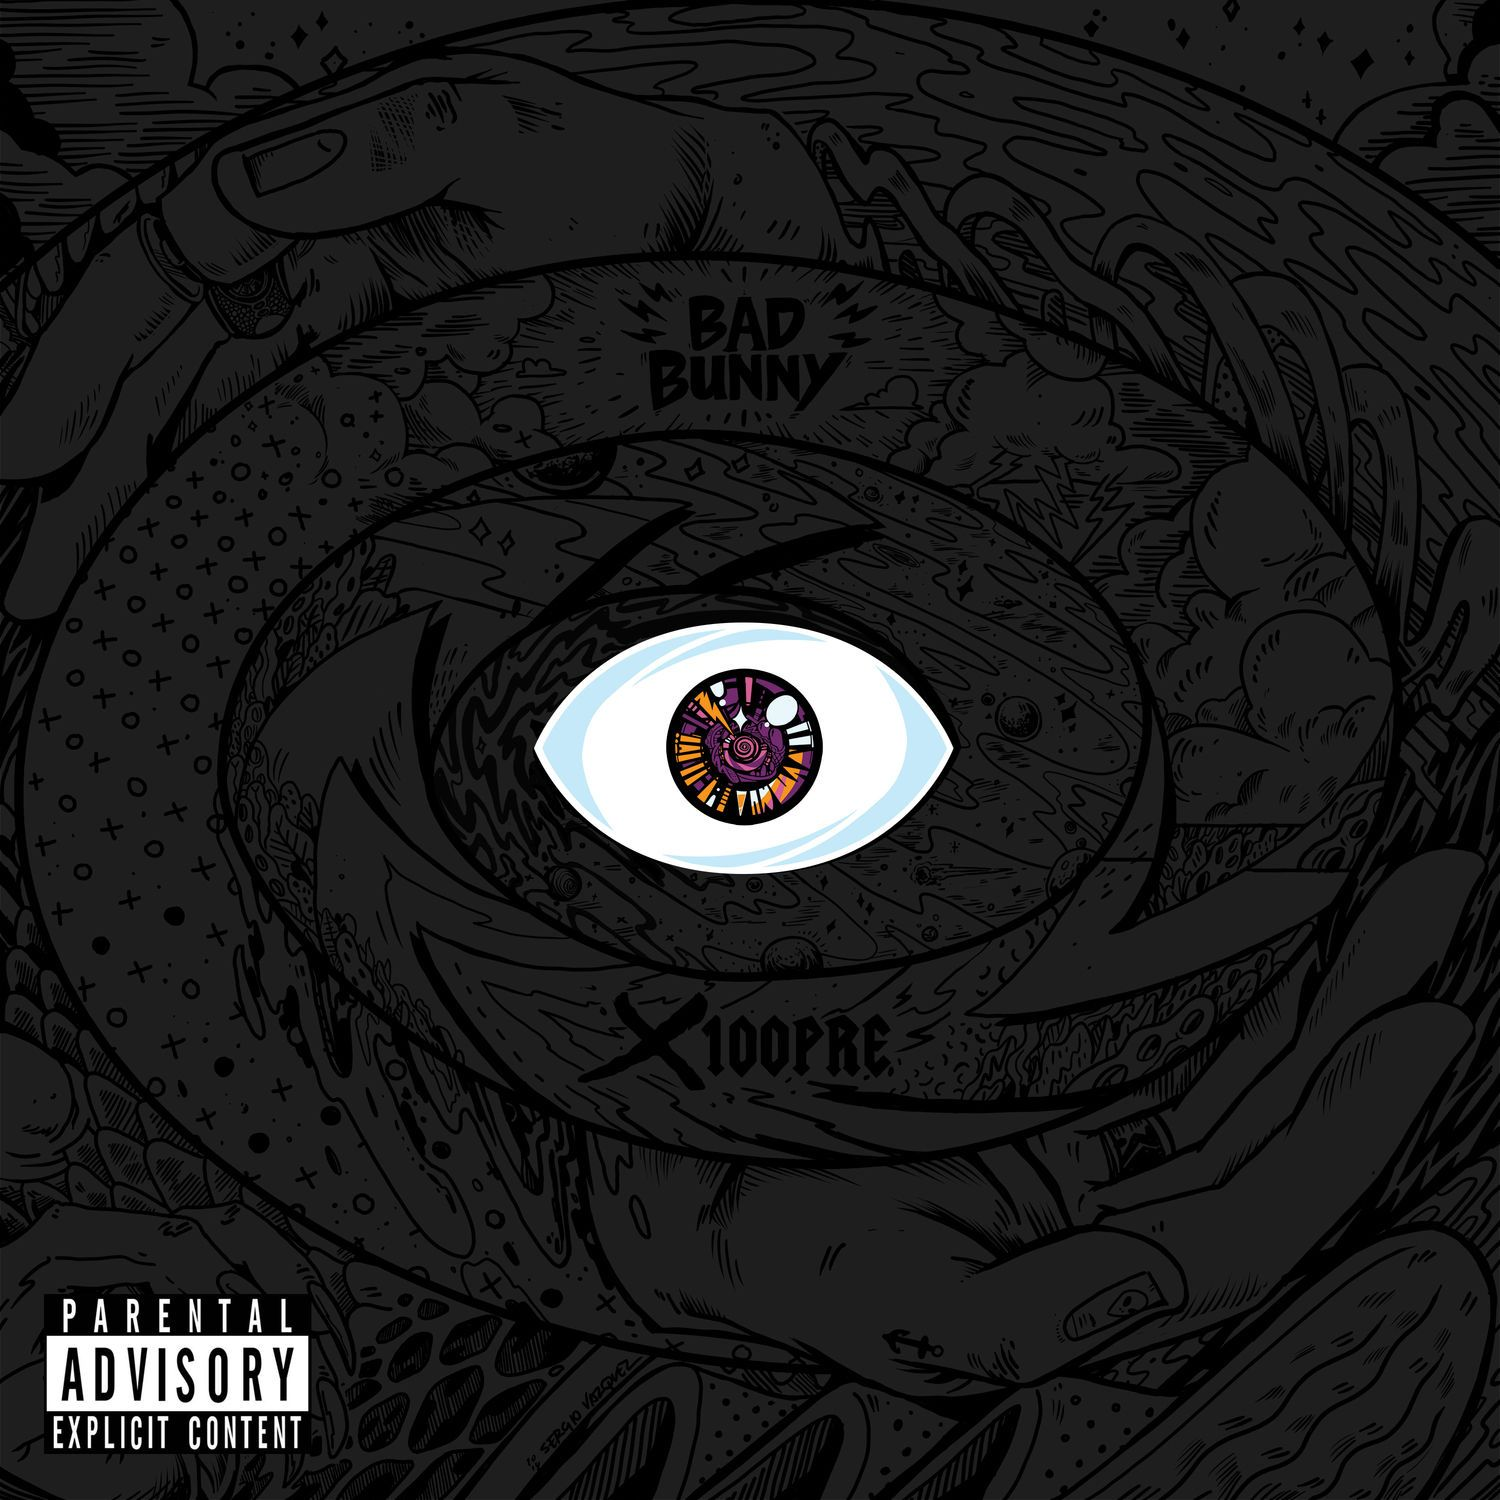 Download Bad Bunny X100pre Lp Album Free Latin Trap